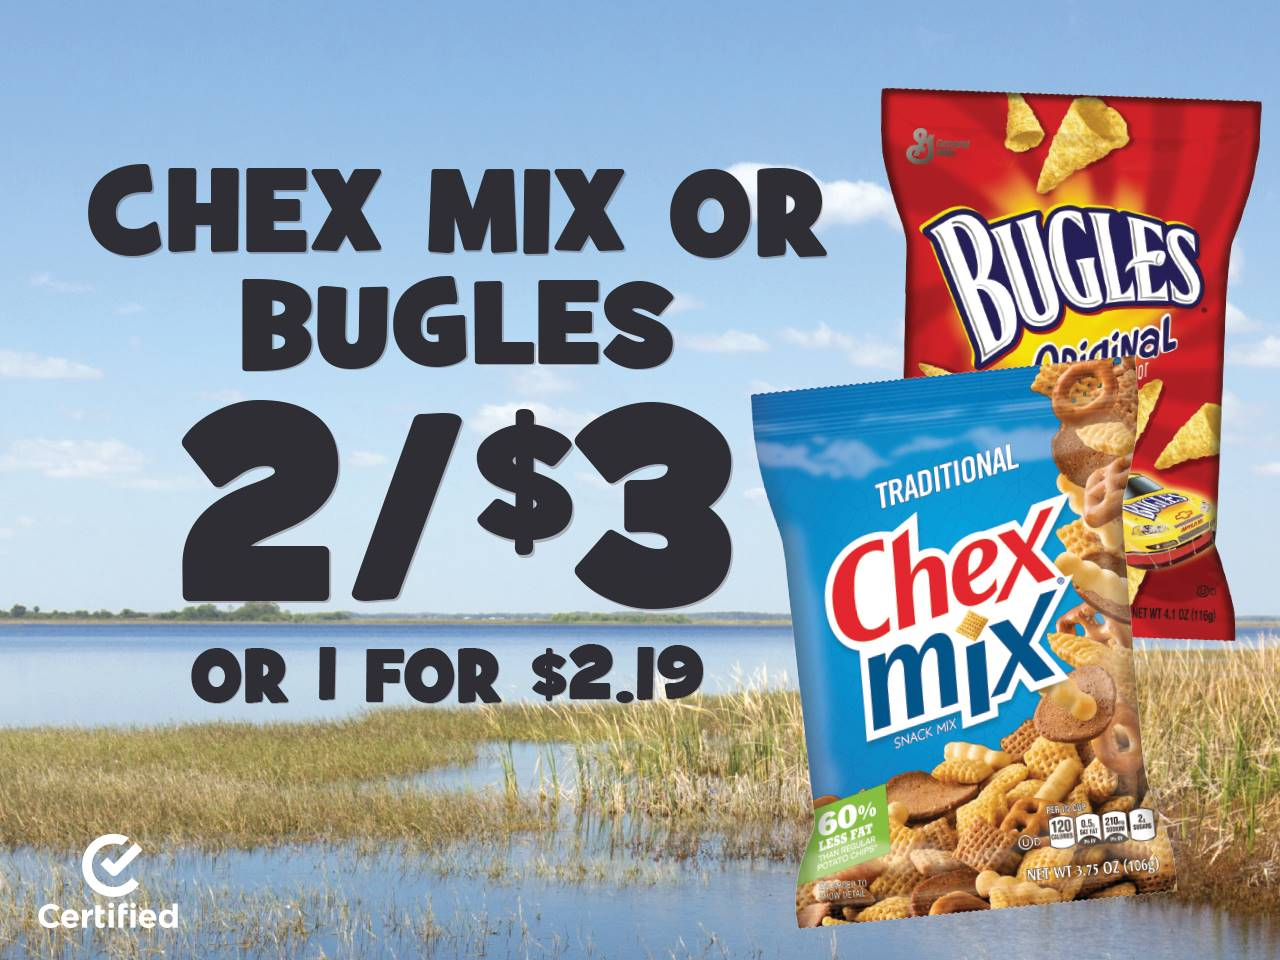 Chex Mix or Bugles 2 for $3